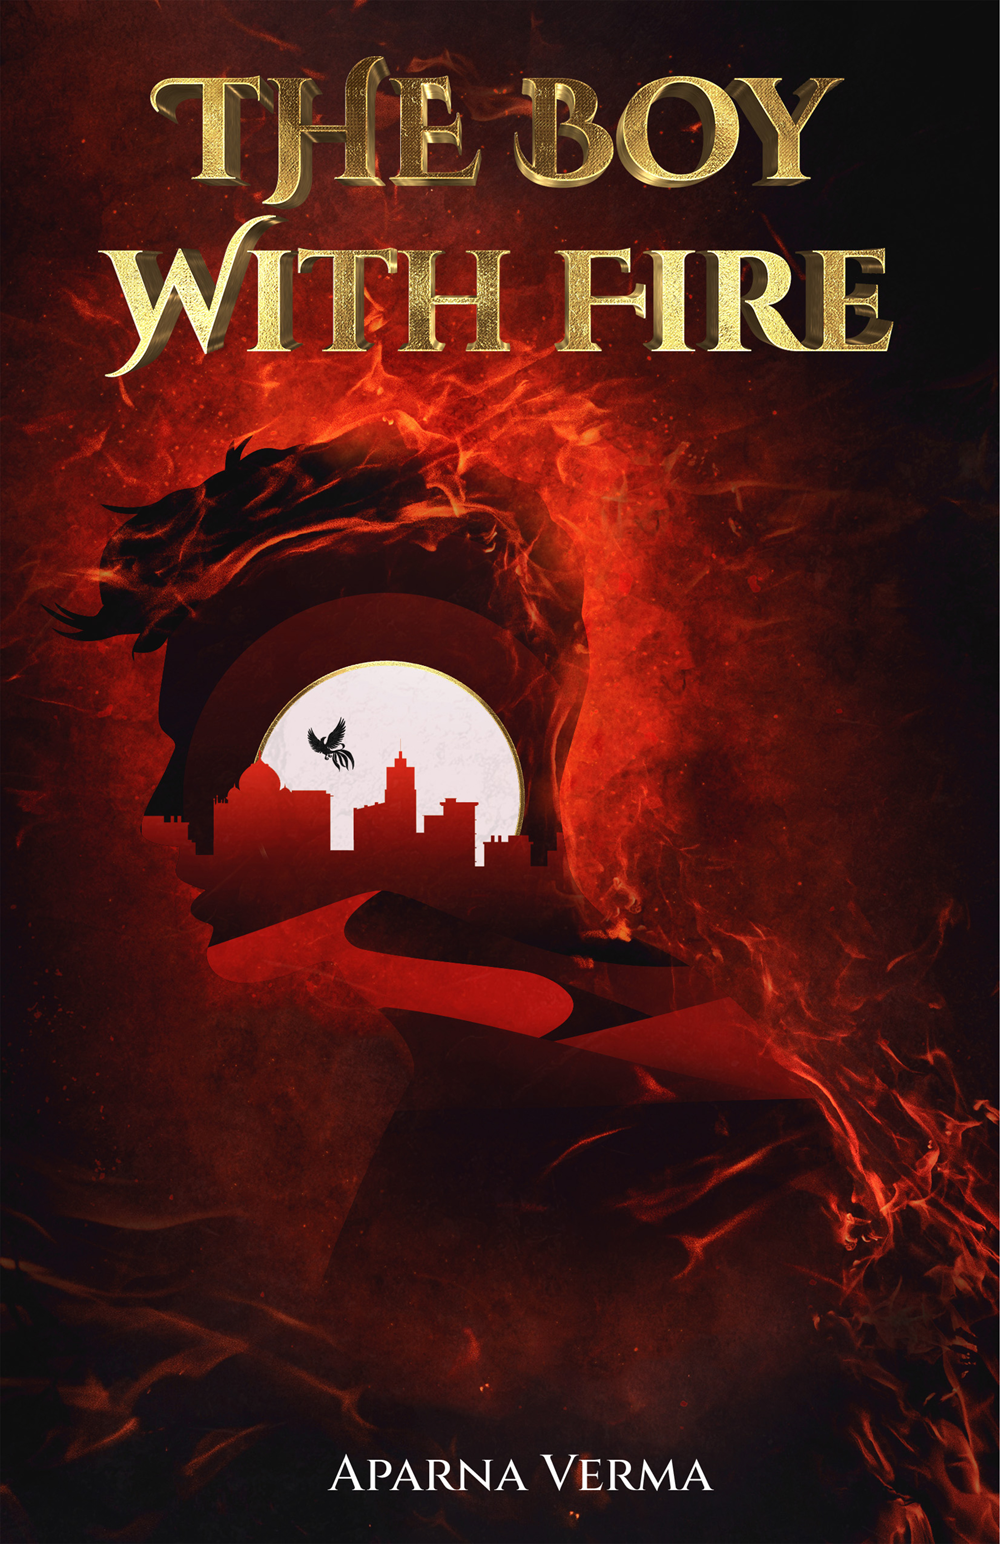 The final book cover for The Boy With Fire by Aparna Verma. The book cover depicts the silhouette of a man in flames; in the silhouette are desert dunes,